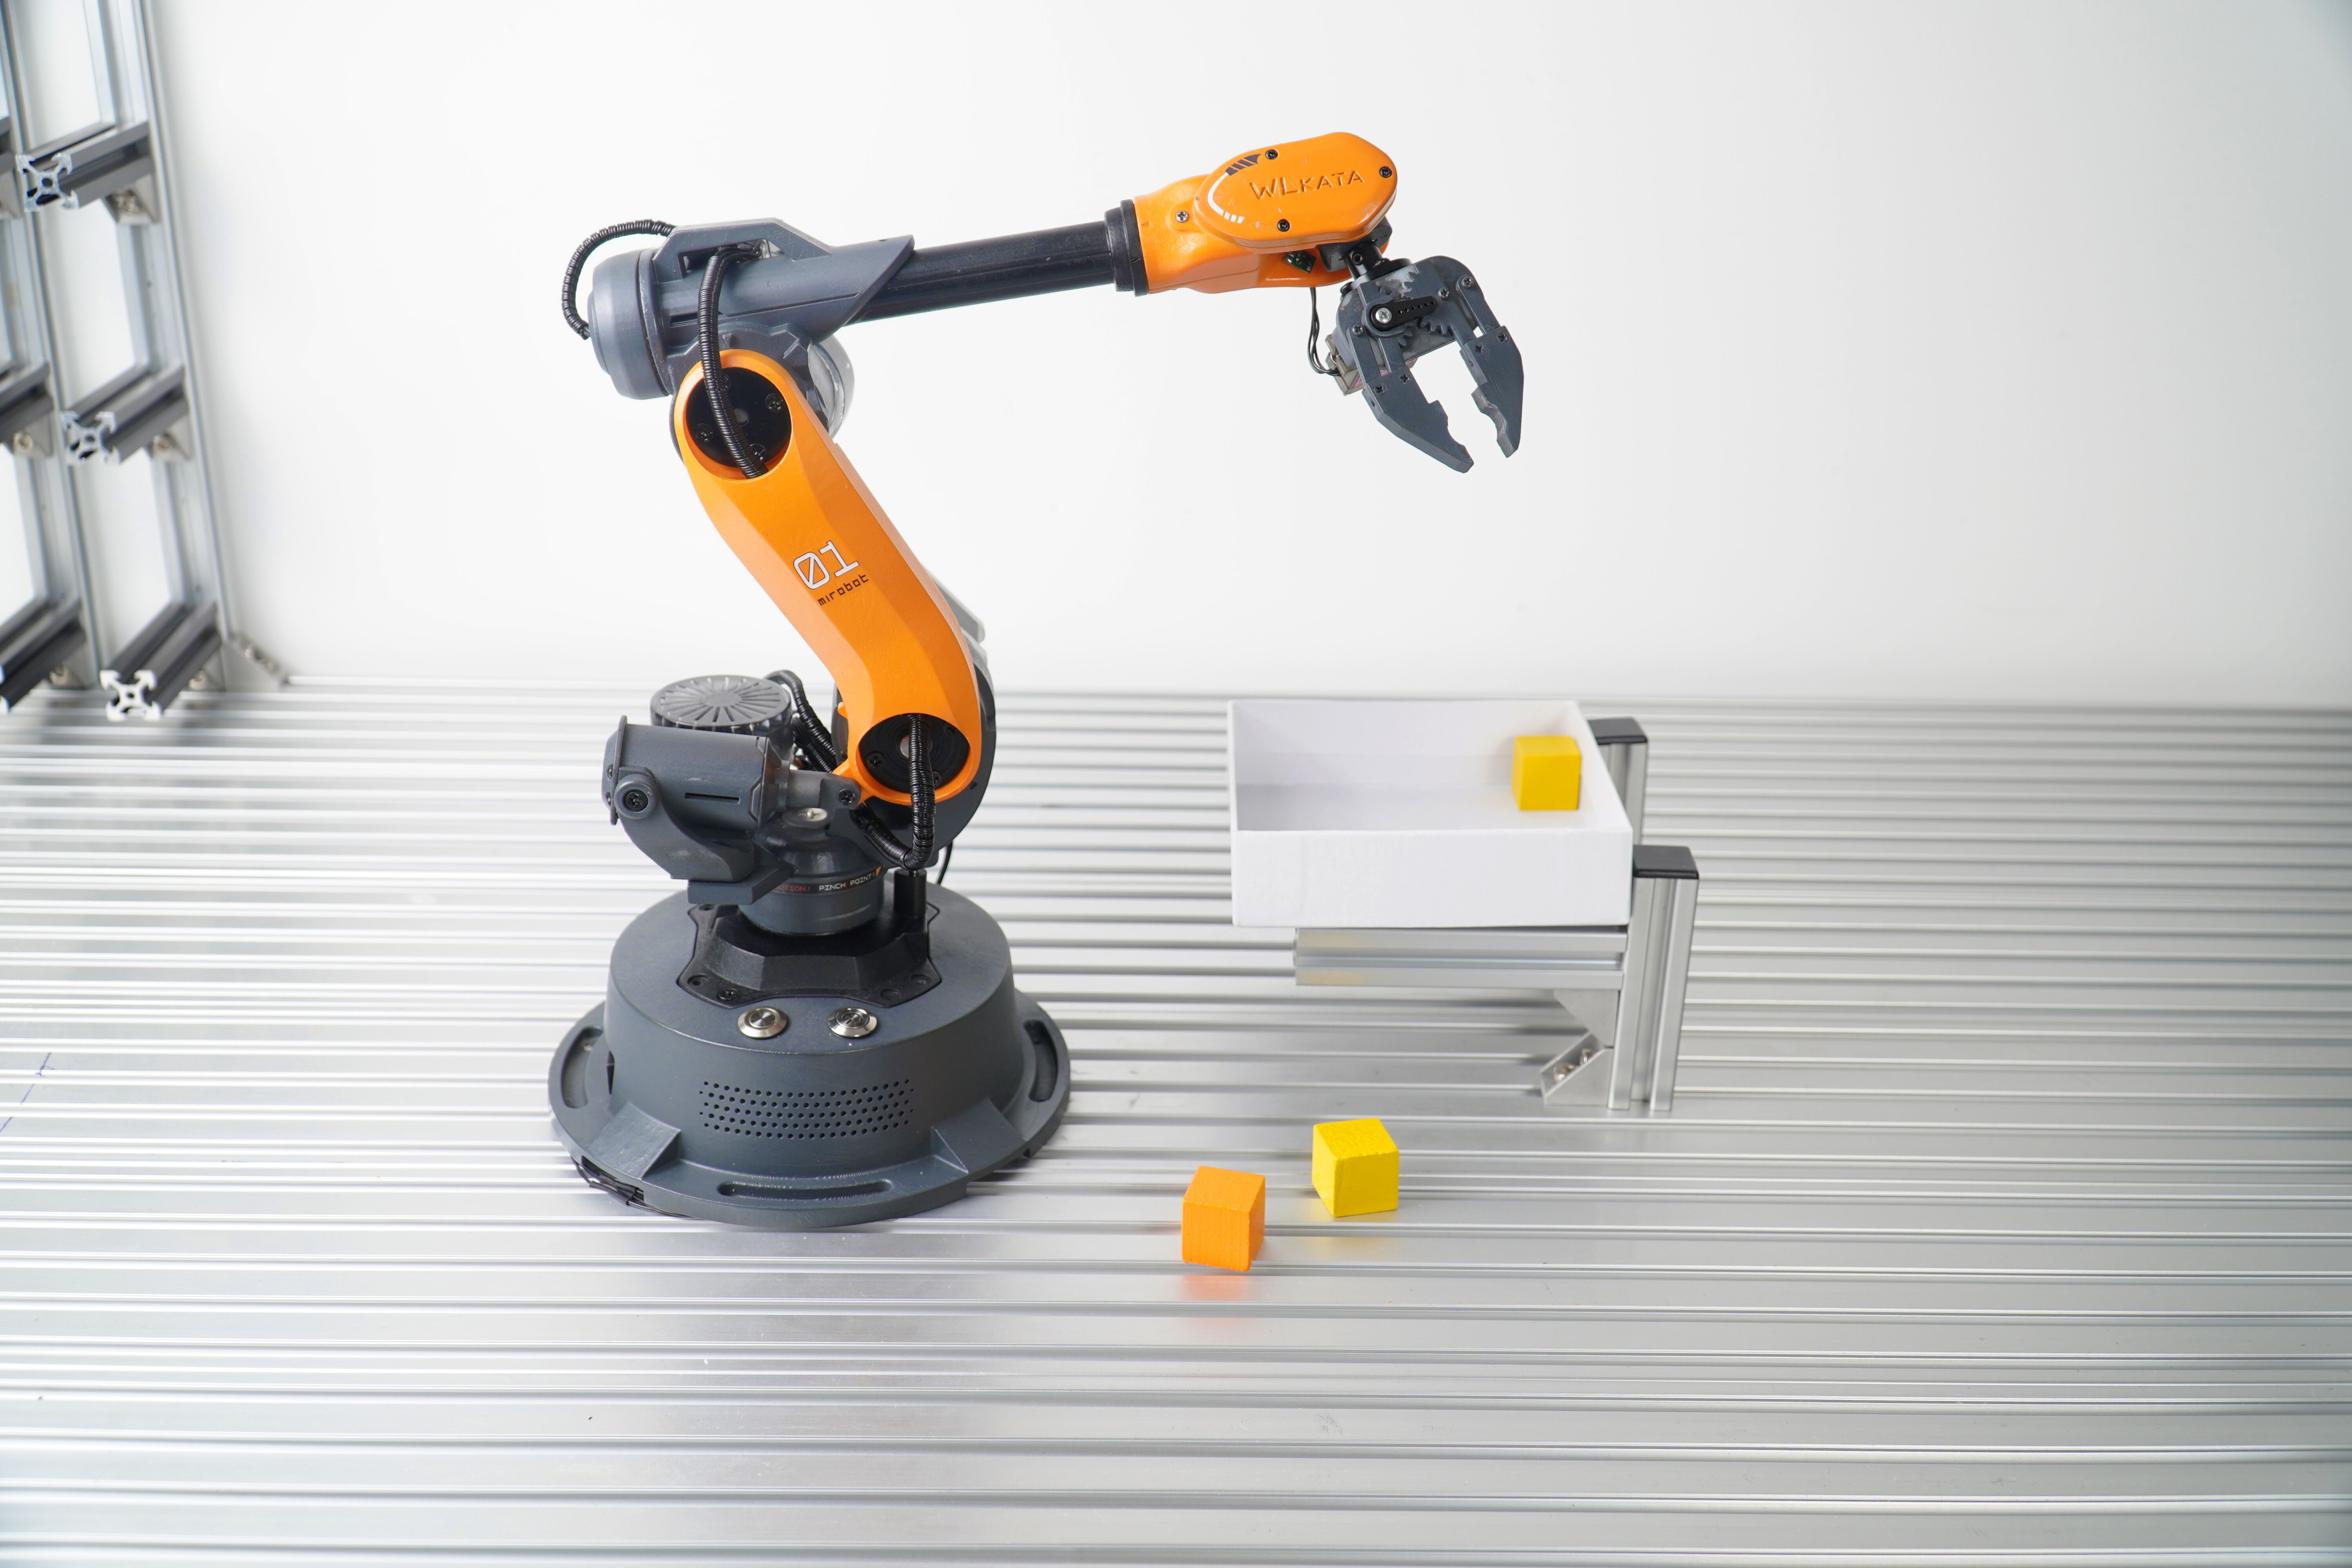 Mirobot Robot Arm is Live on Kickstarter